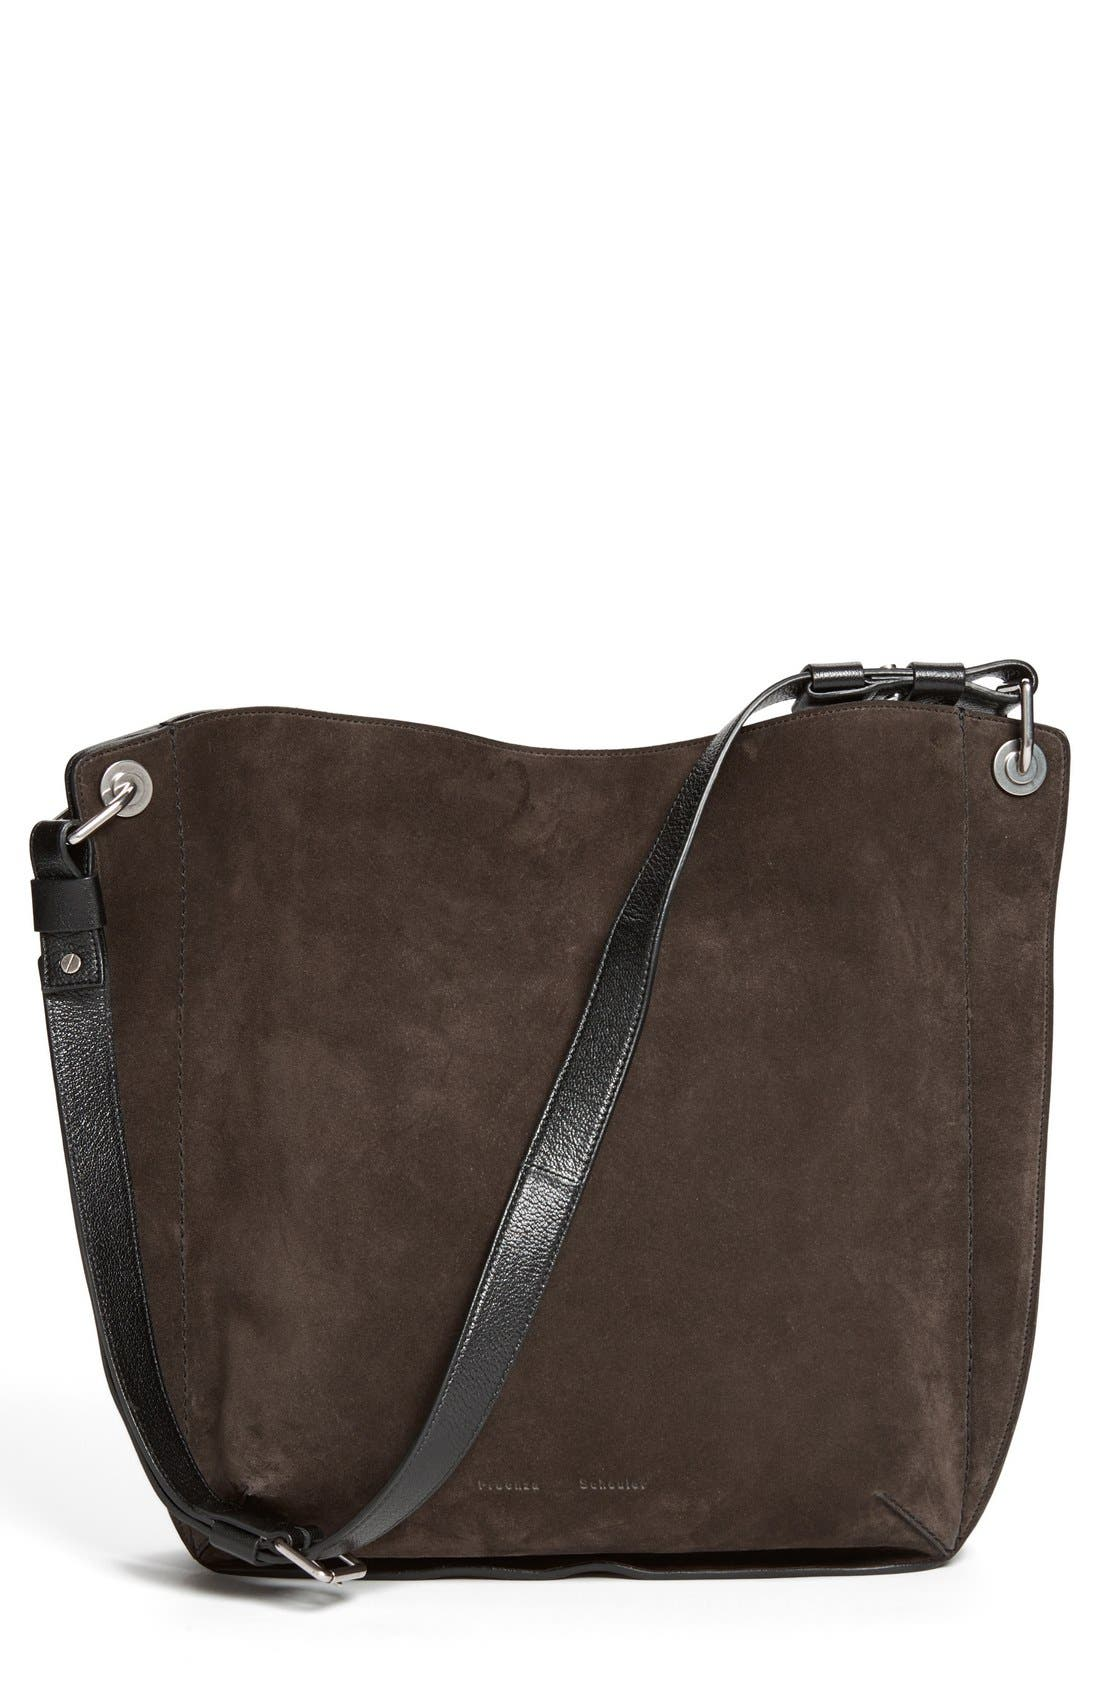 Alternate Image 1 Selected - Proenza Schouler 'Large Prospect' Suede Tote